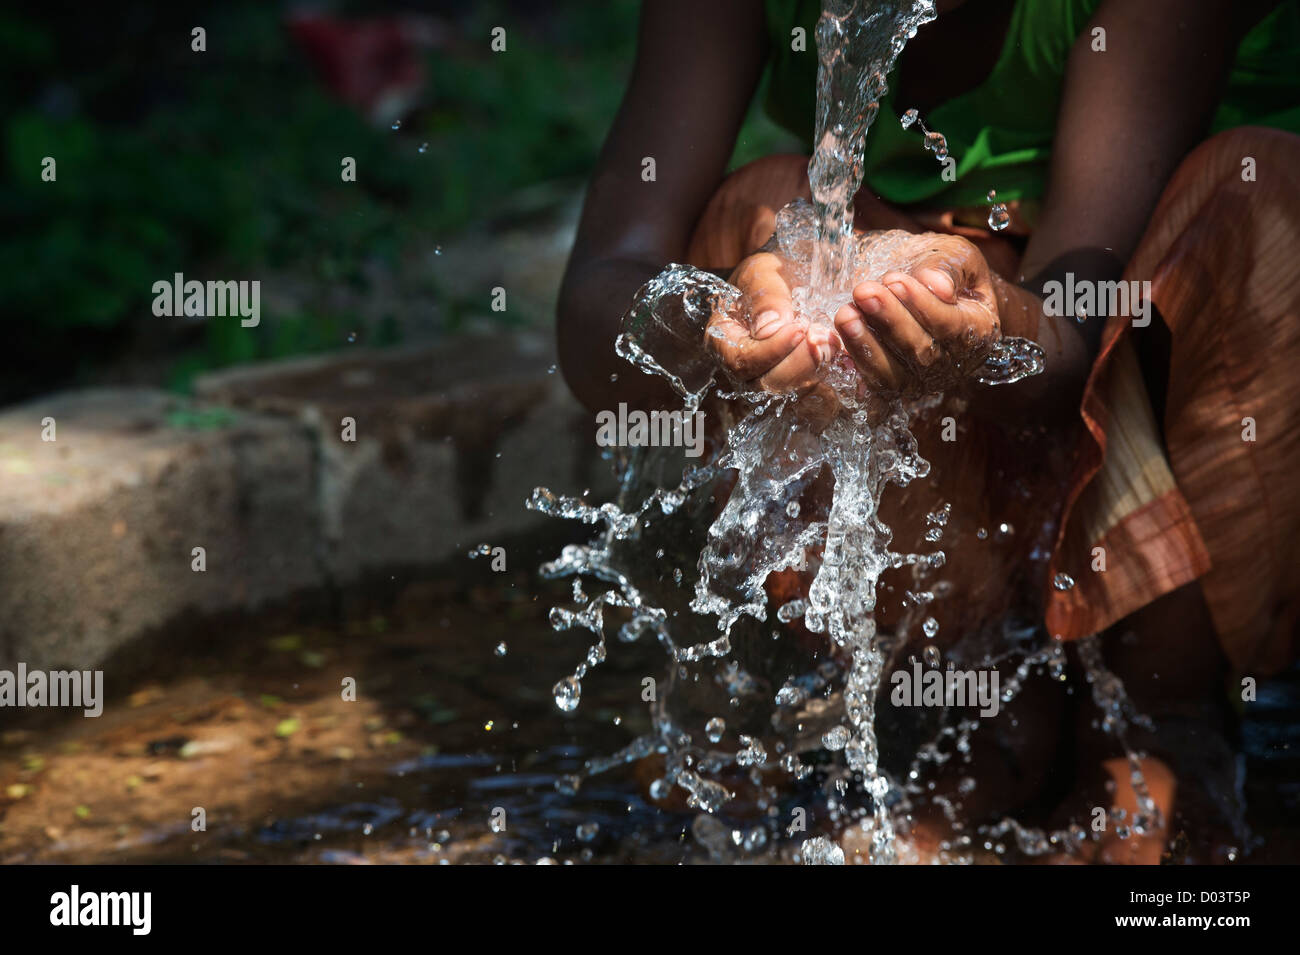 Water from a hand pump in a rural indian village pouring into an Indian girls hands. Andhra Pradesh, India. Stock Photo